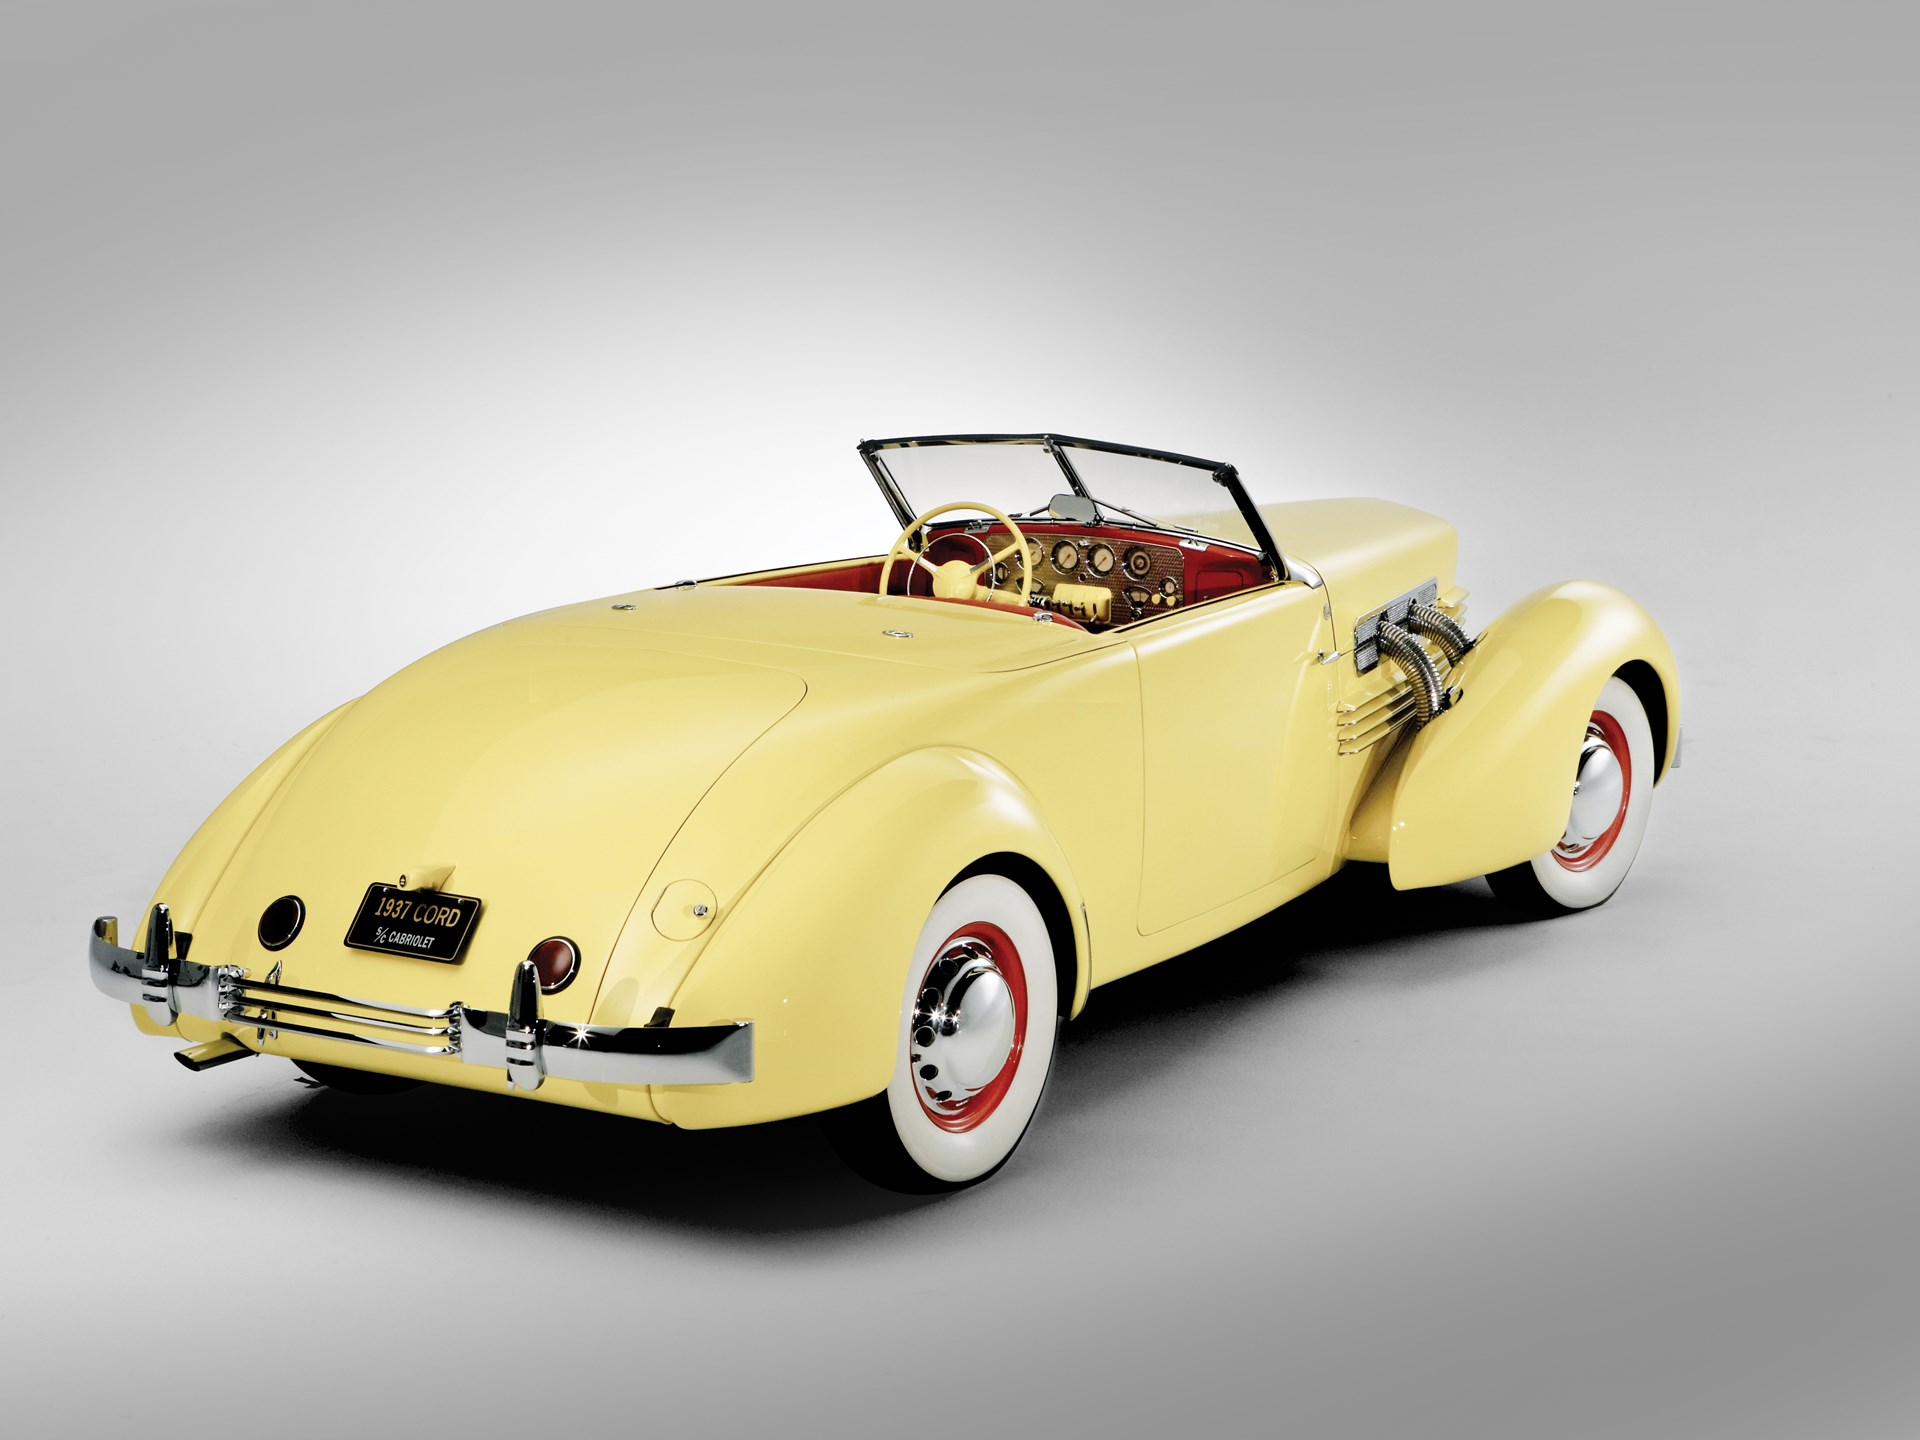 1937 Cord 812 Sc Sportsman Convertible Coupe